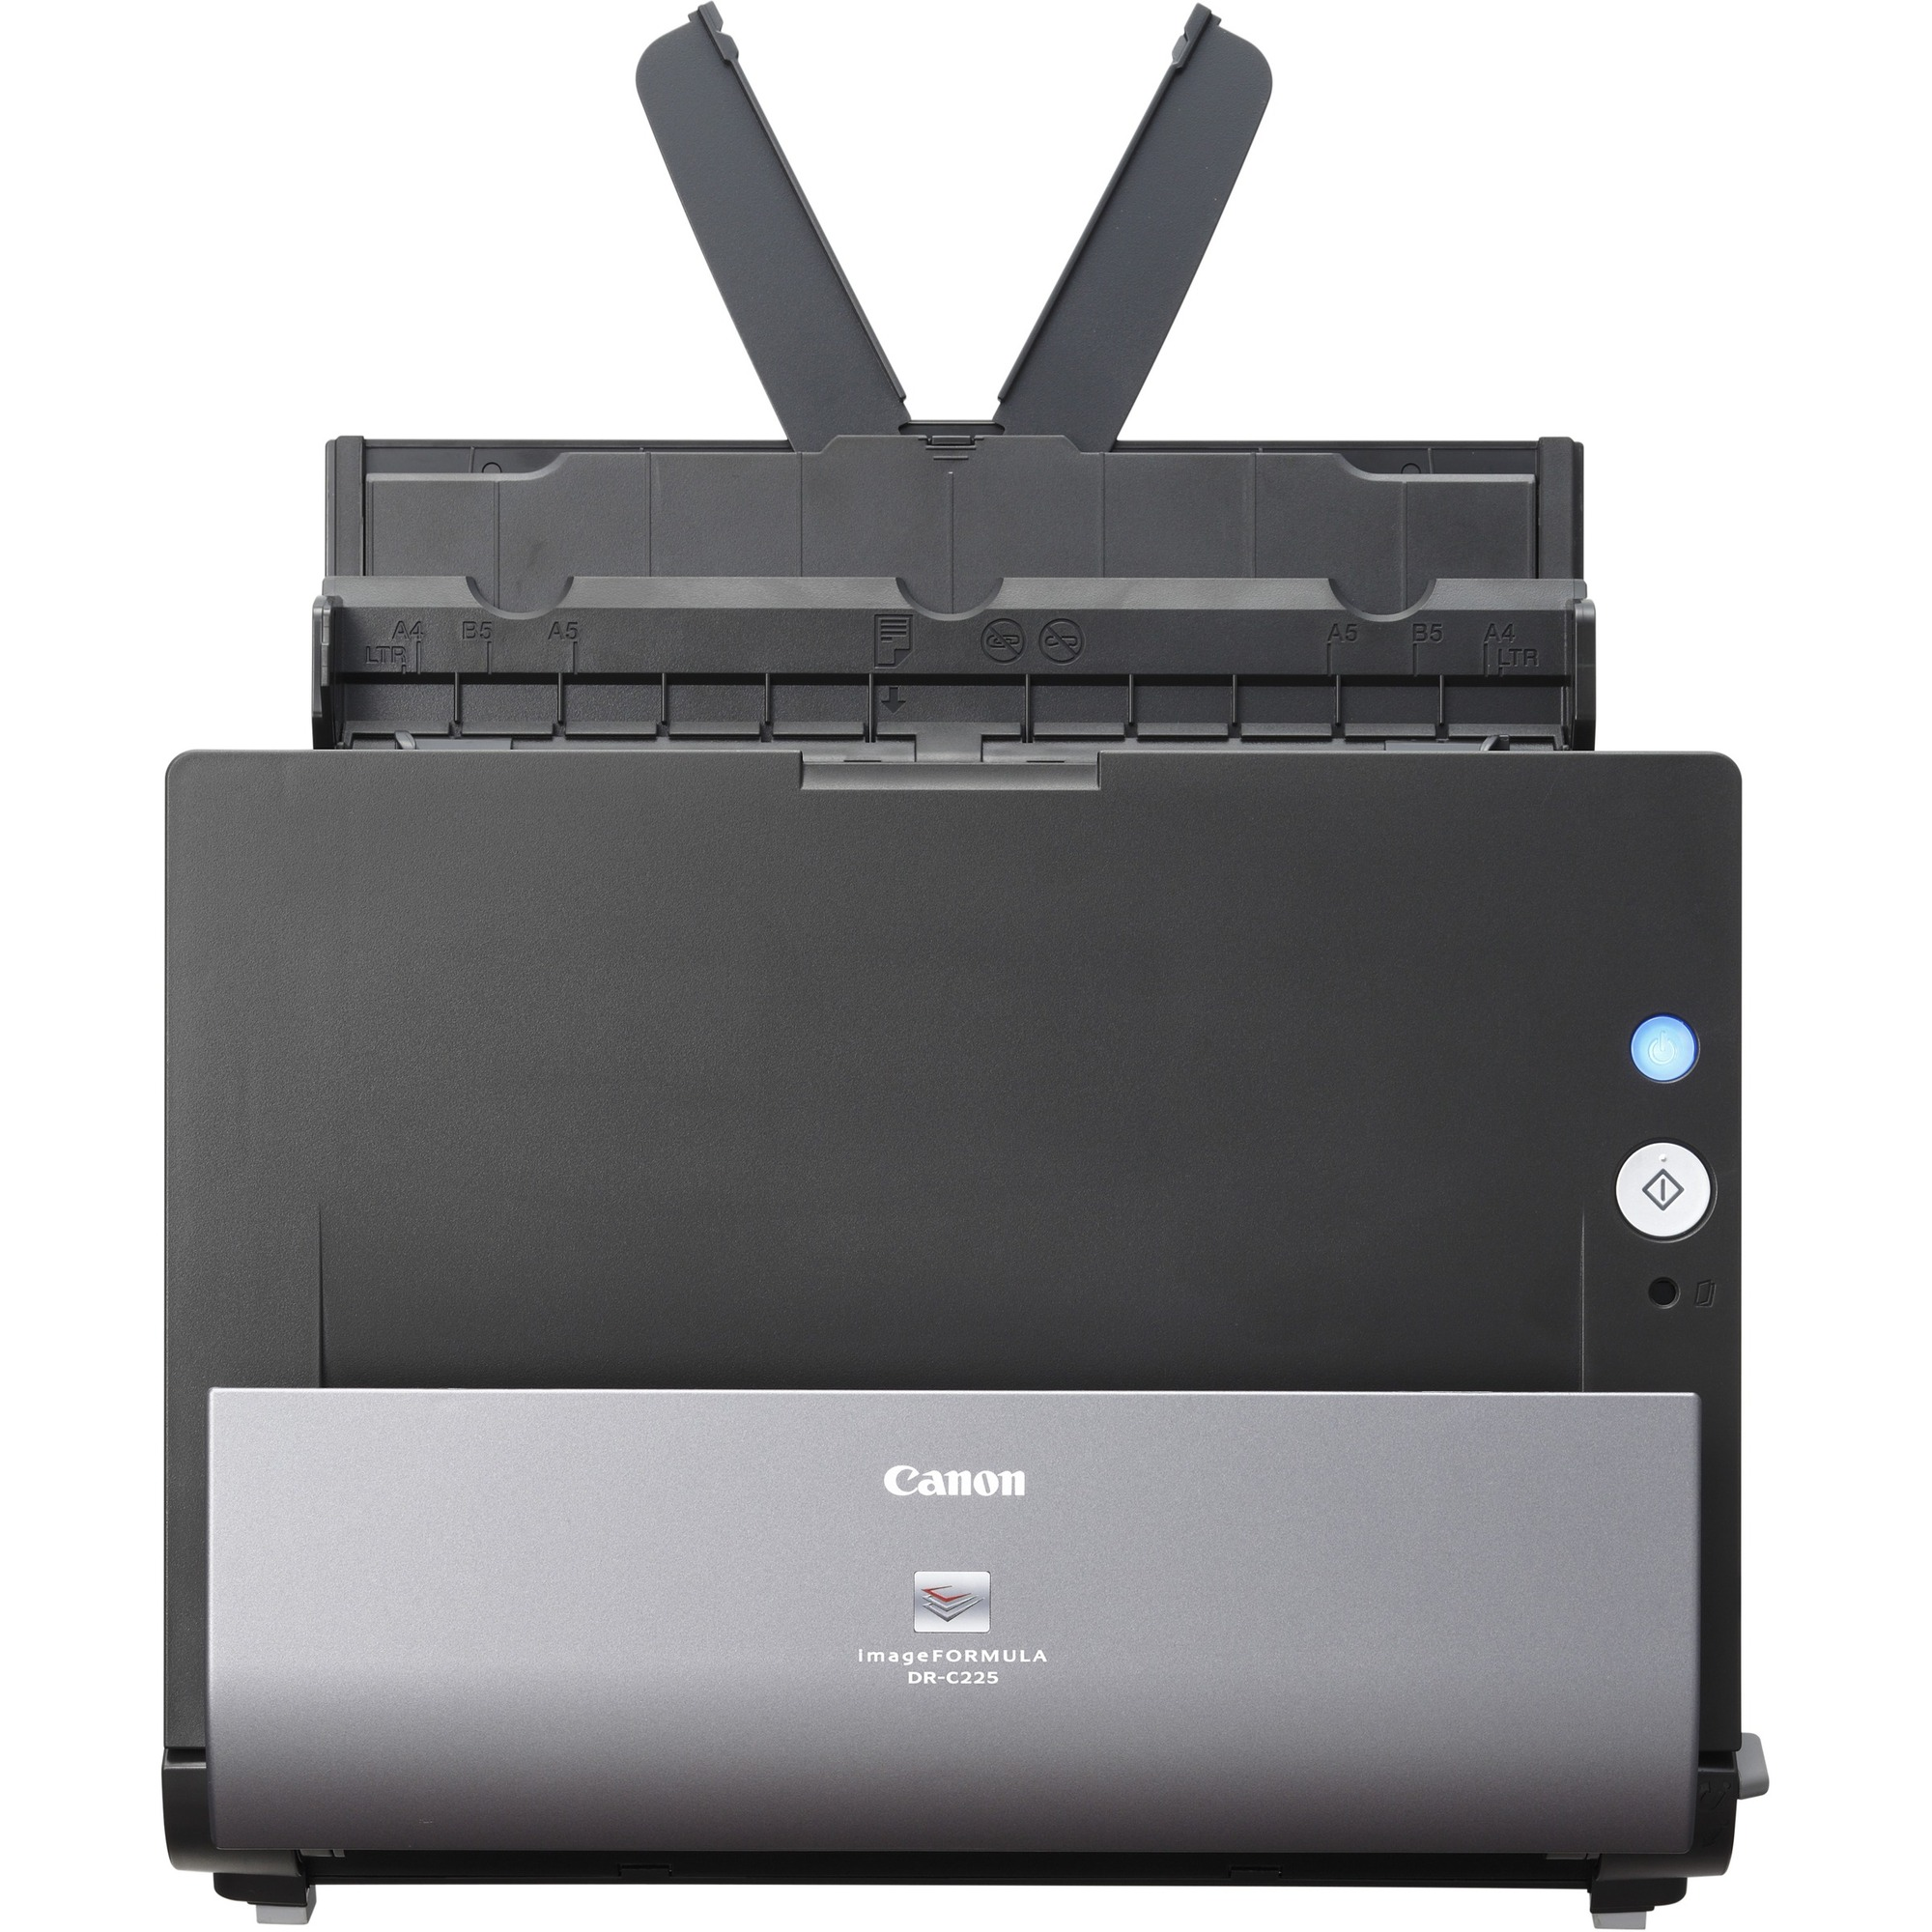 Canon imageFORMULA DR-C225 Sheetfed Scanner - 600 dpi Optical